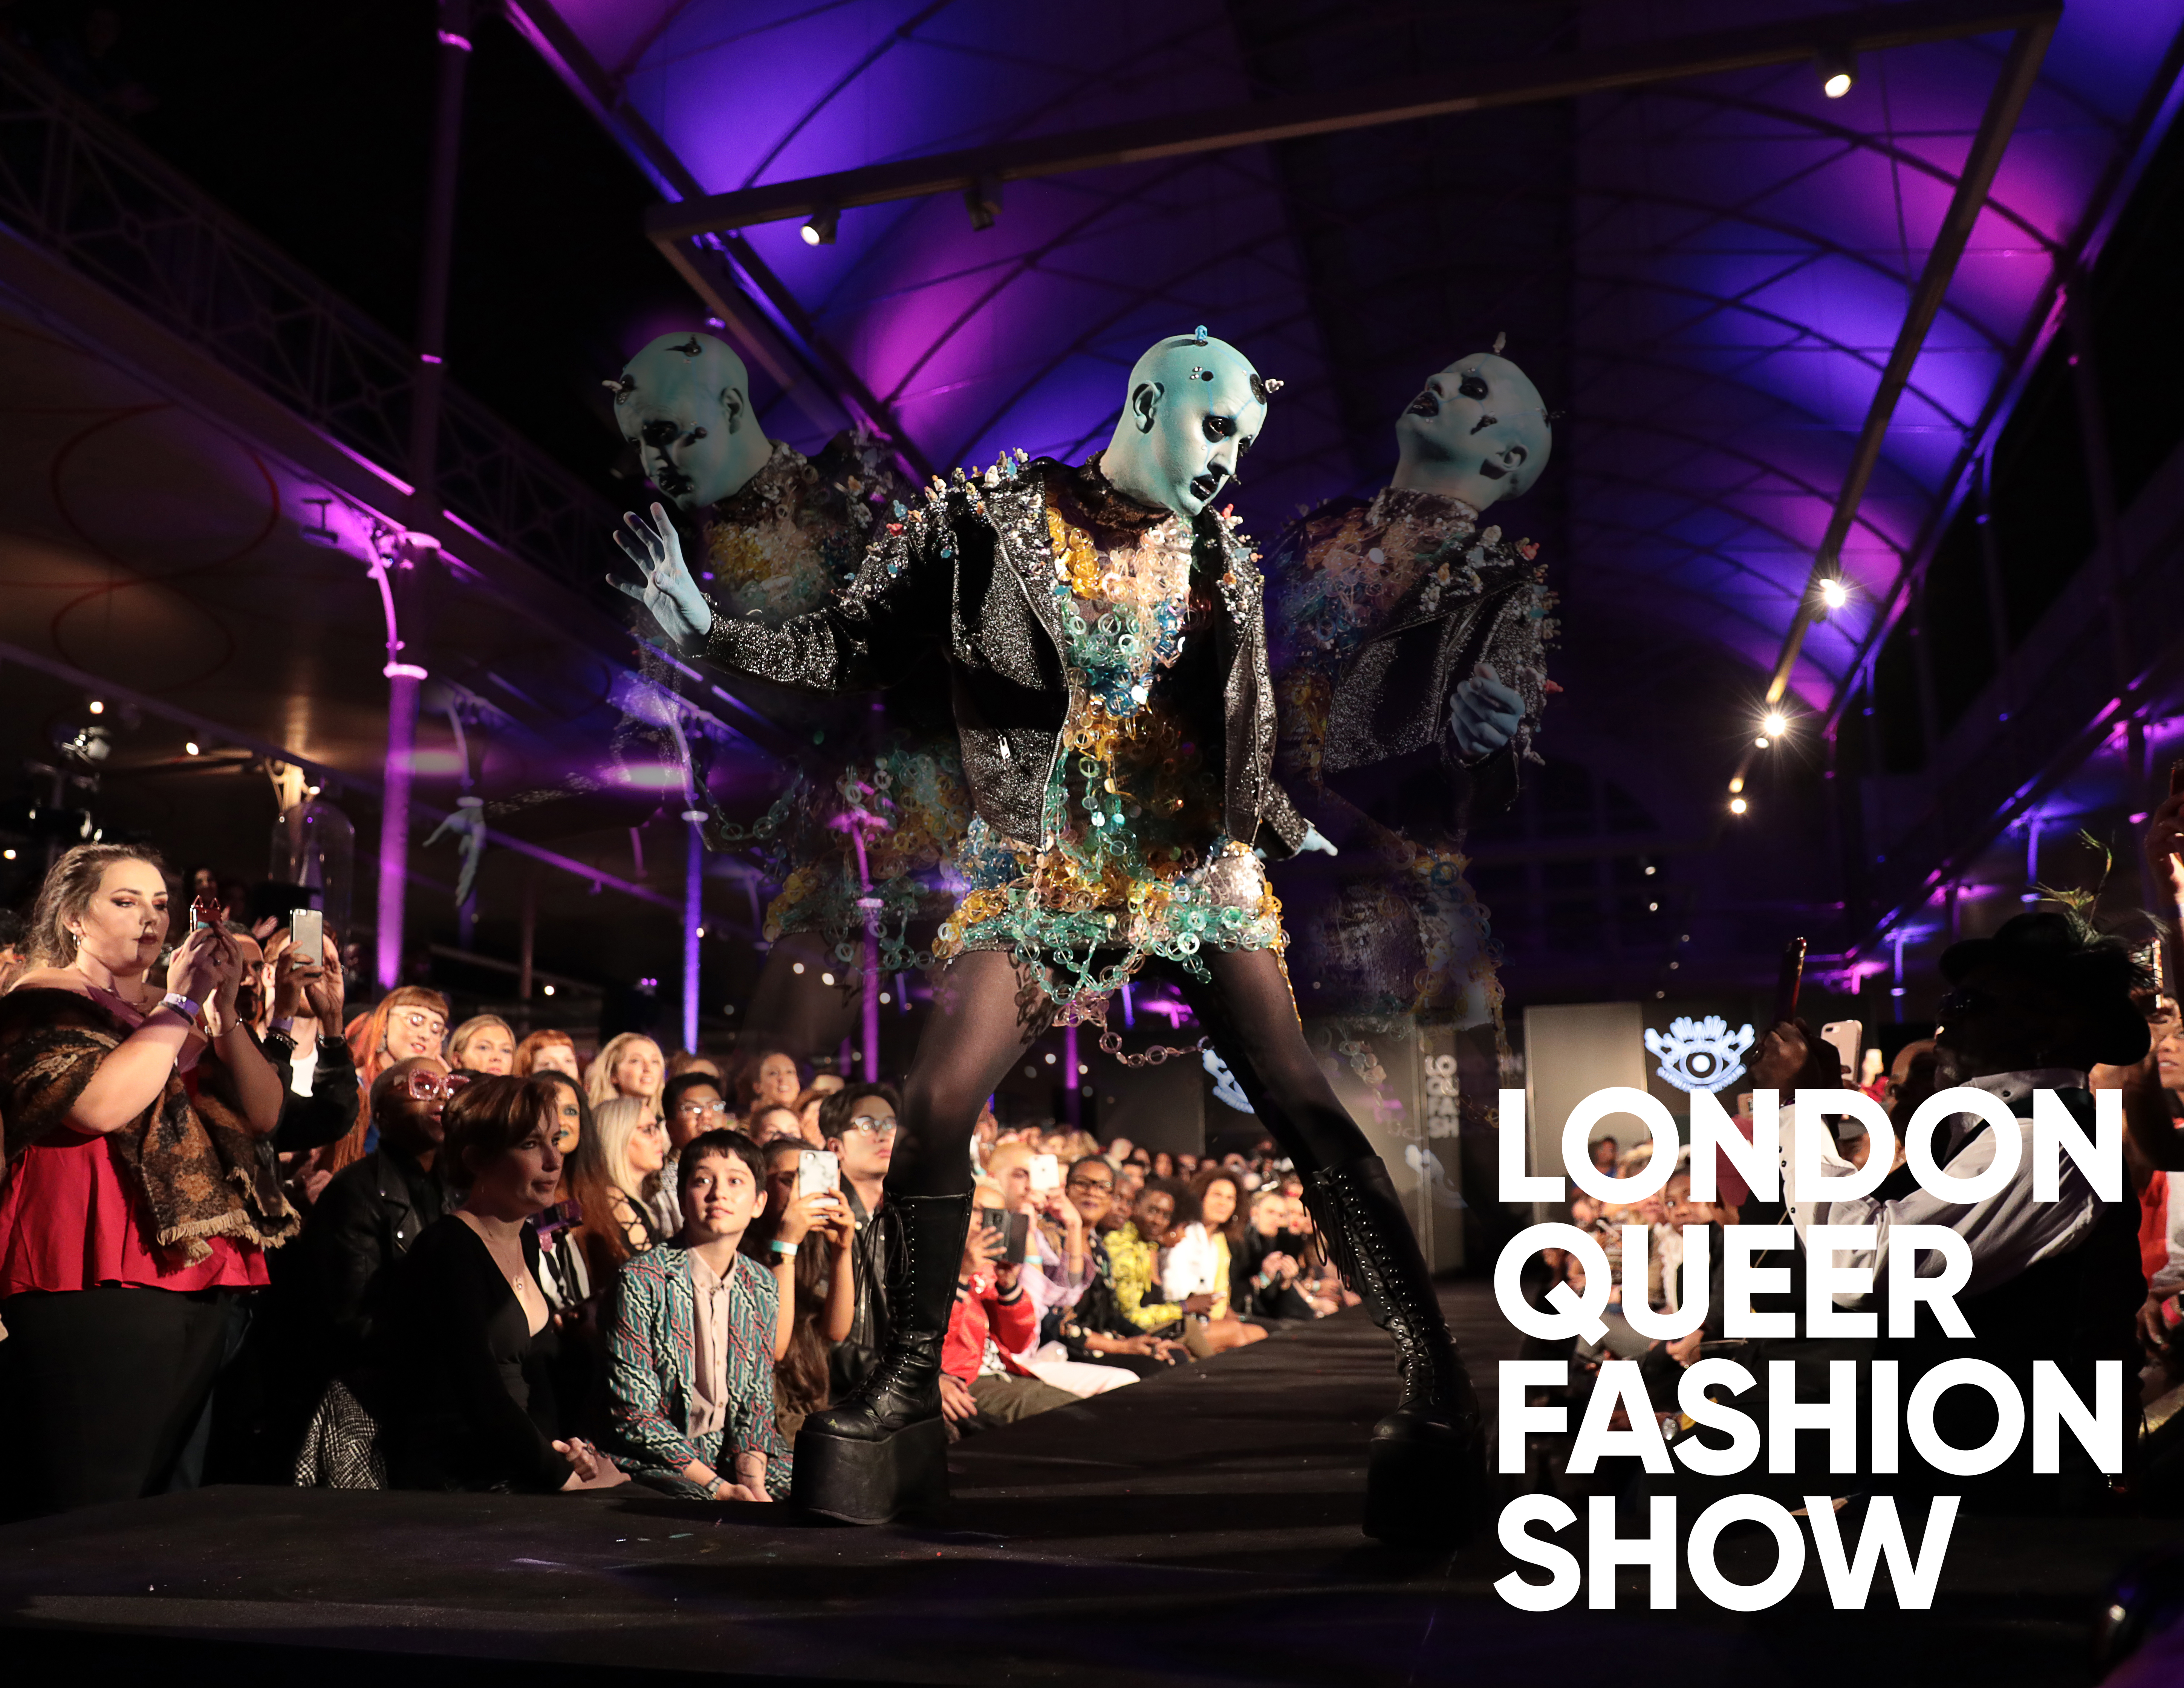 London Queer Fashion Show 2018 at the V&A Museum of Childhood on 20th of September